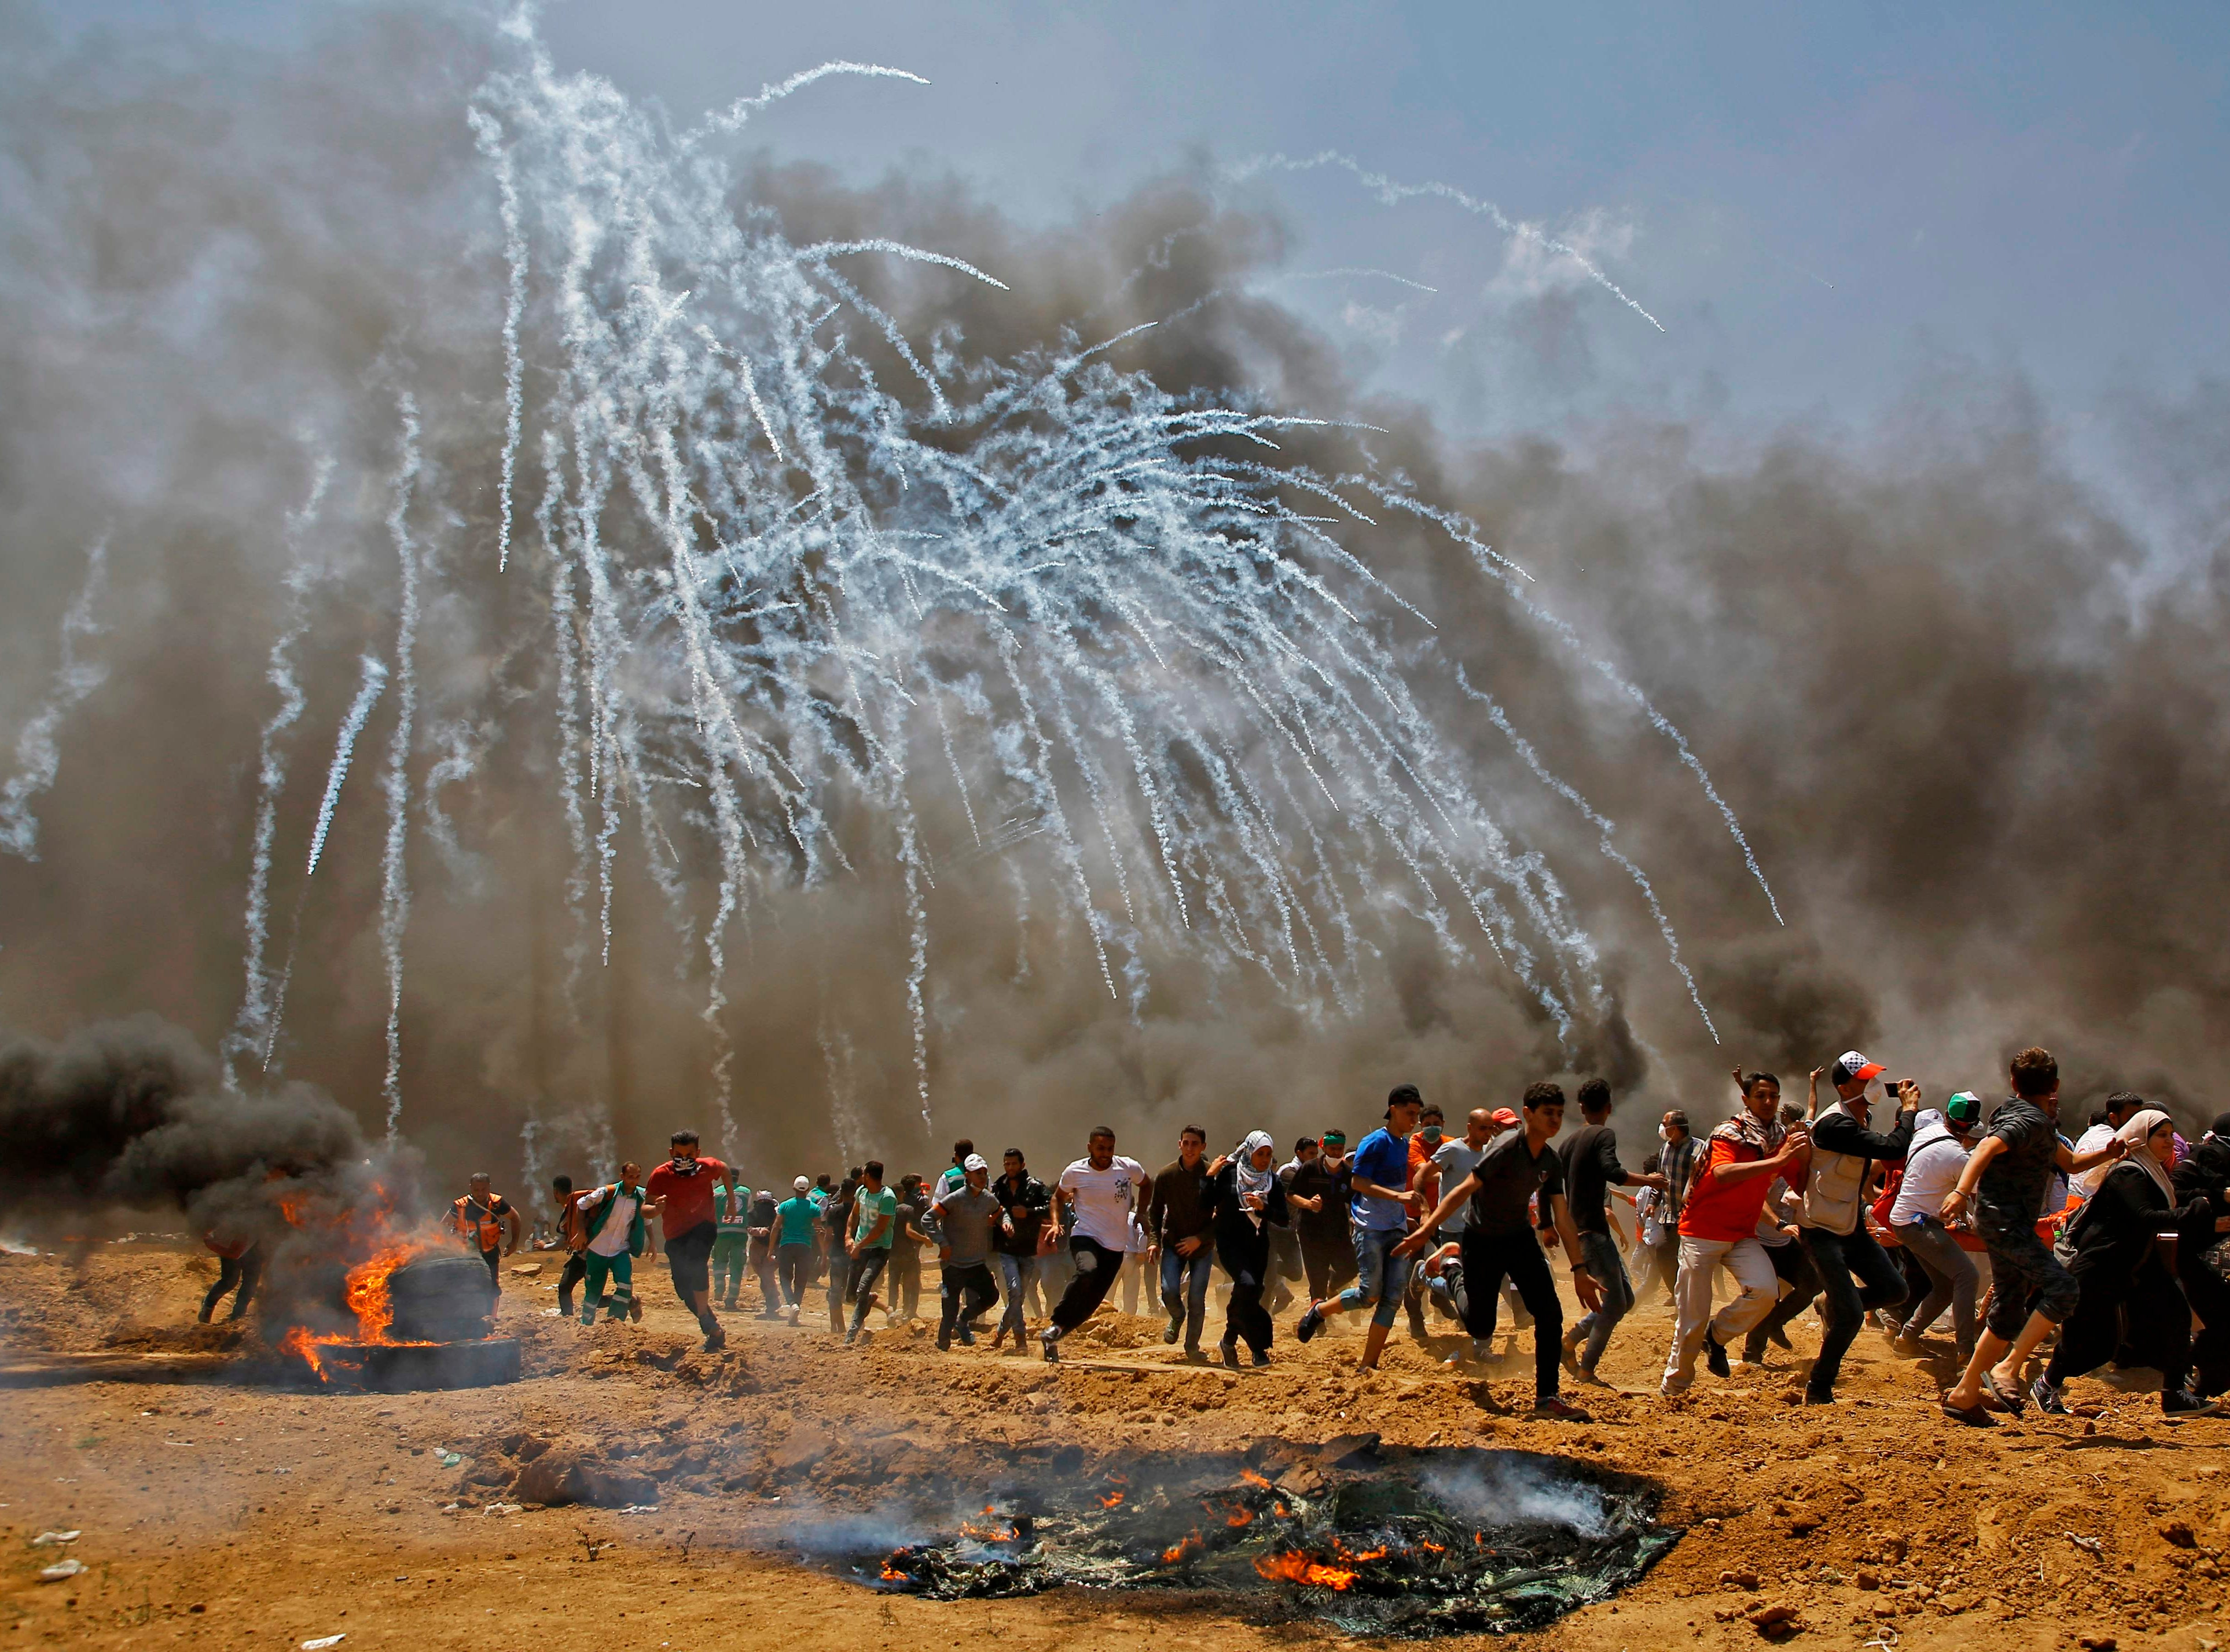 May 14, 2018: Palestinians run for cover from tear gas during clashes with Israeli security forces near the border between Israel and the Gaza Strip, east of Jabalia as Palestinians protest over the inauguration of the US embassy following its controversial move to Jerusalem.